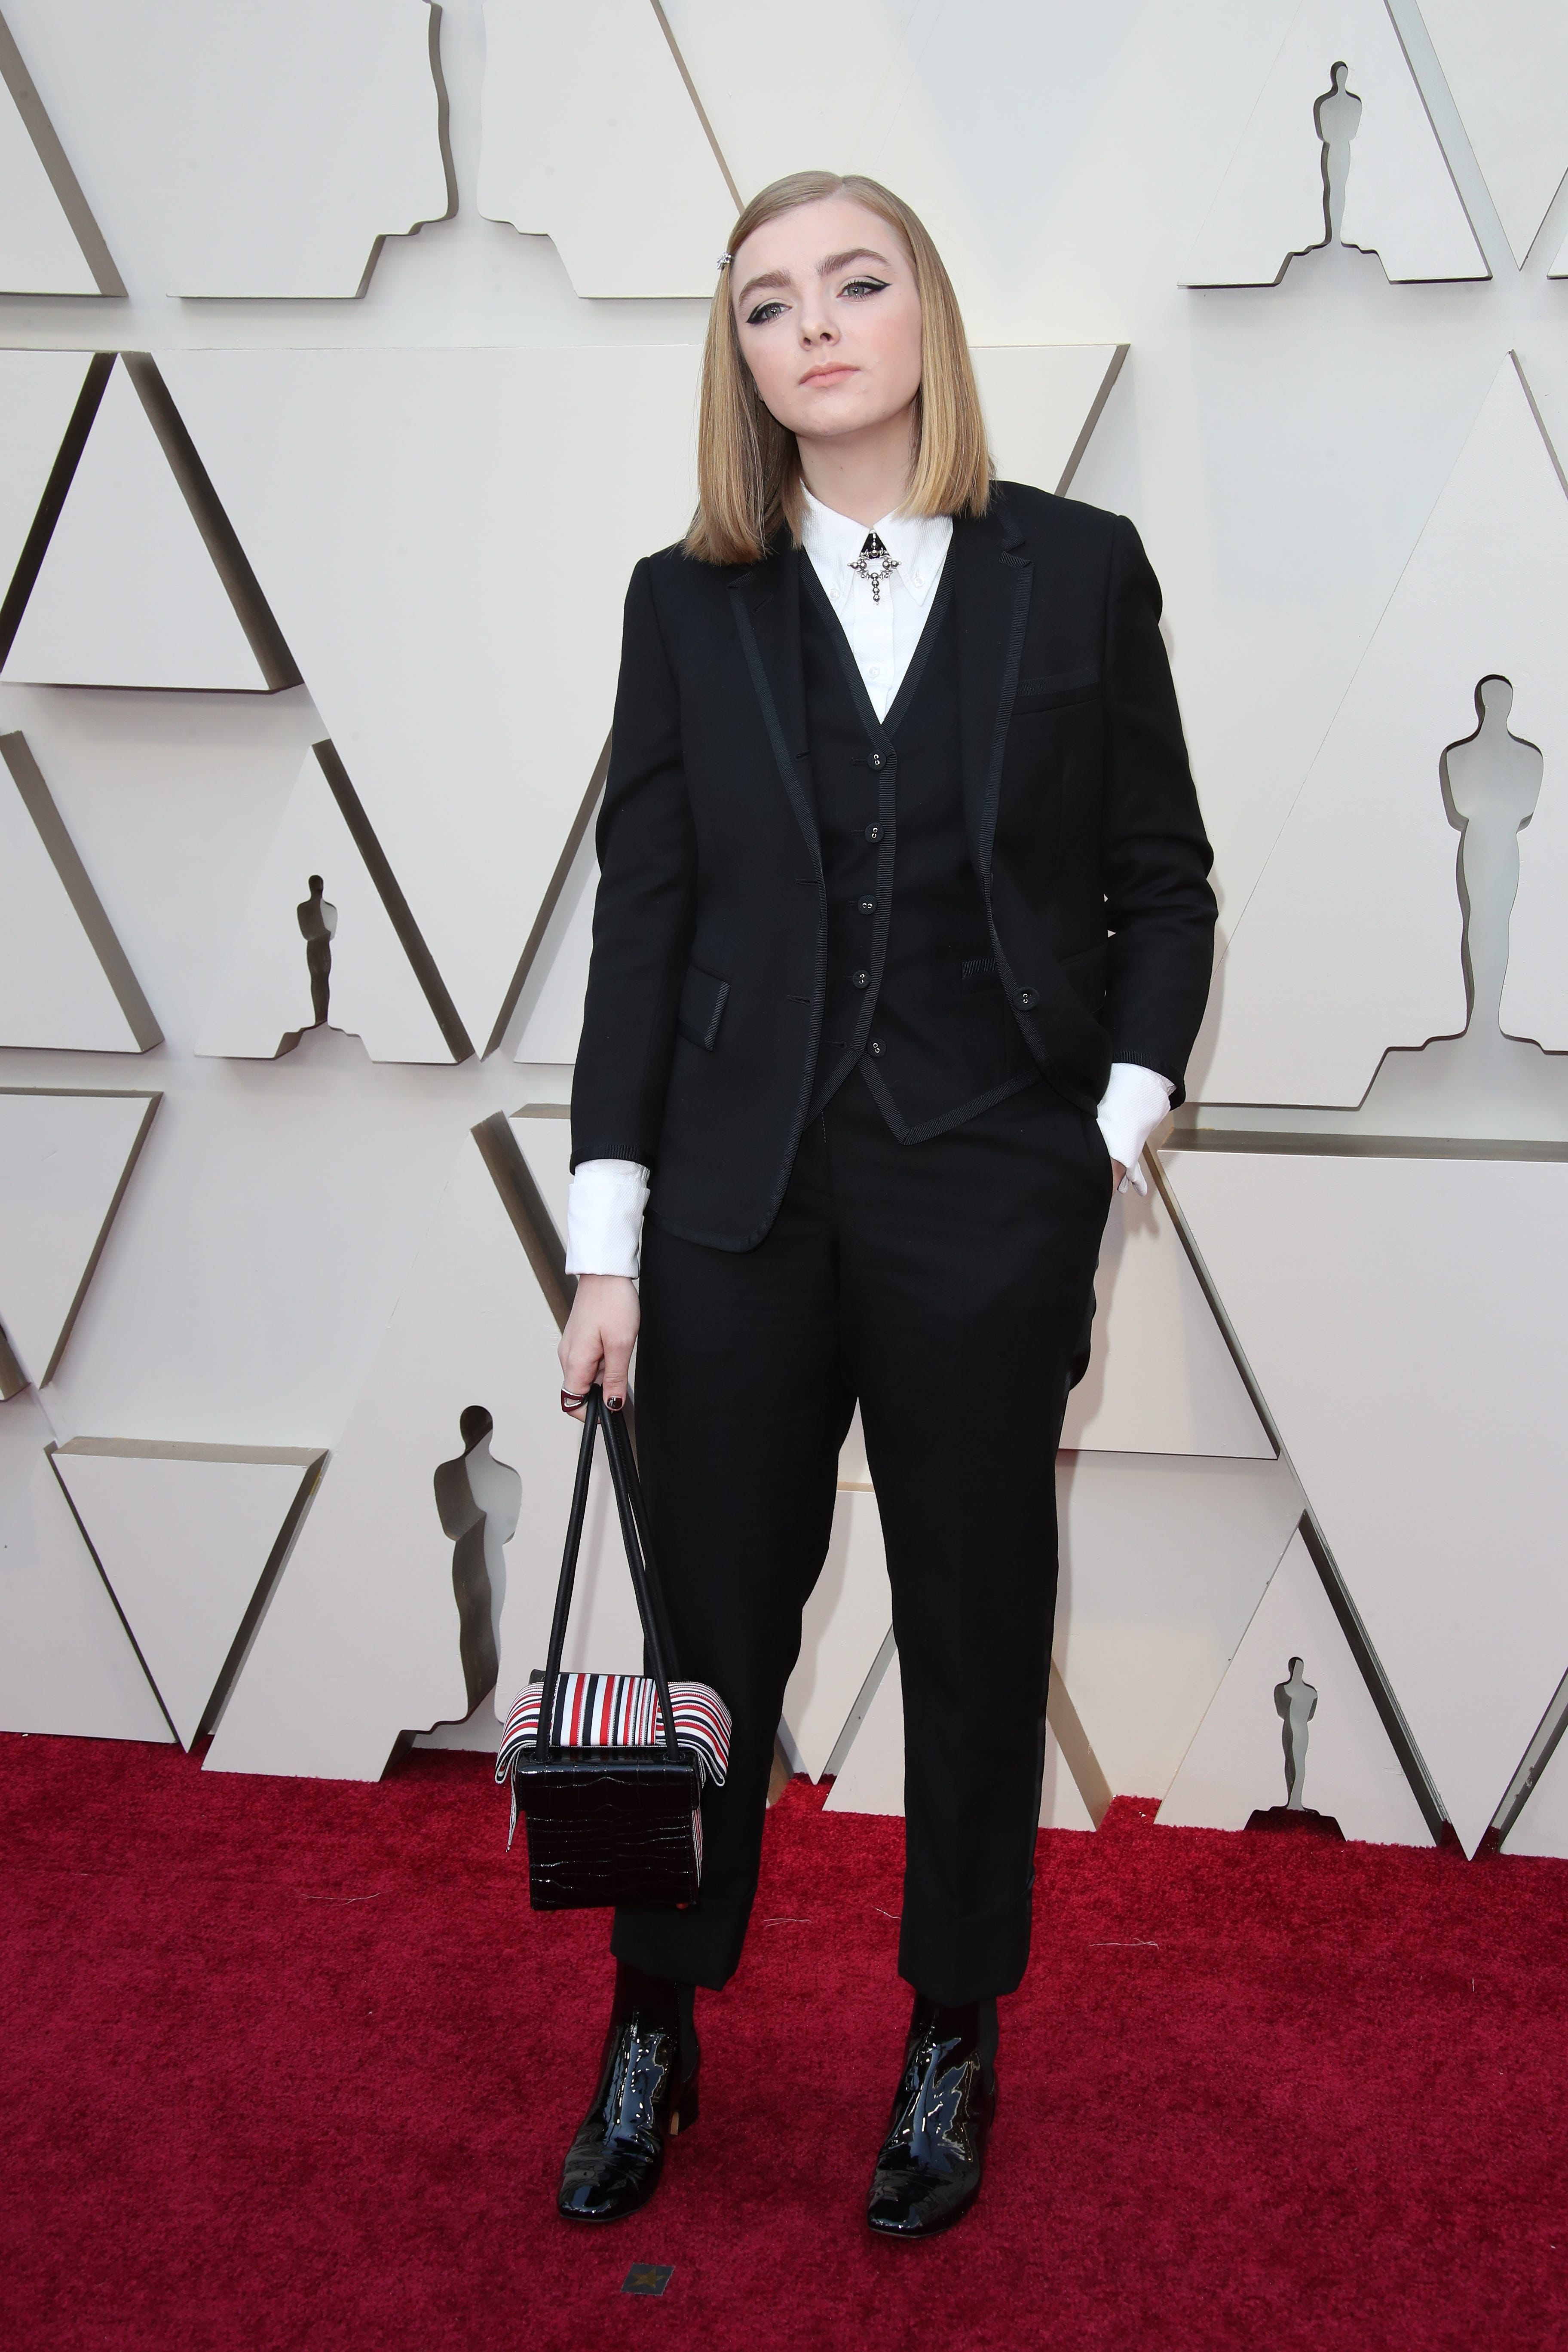 February 24, 2019; Los Angeles, CA, USA; Elsie Fisher arrives at the 91st Academy Awards at the Dolby Theatre. Mandatory Credit: Dan MacMedan-USA TODAY NETWORK (Via OlyDrop)